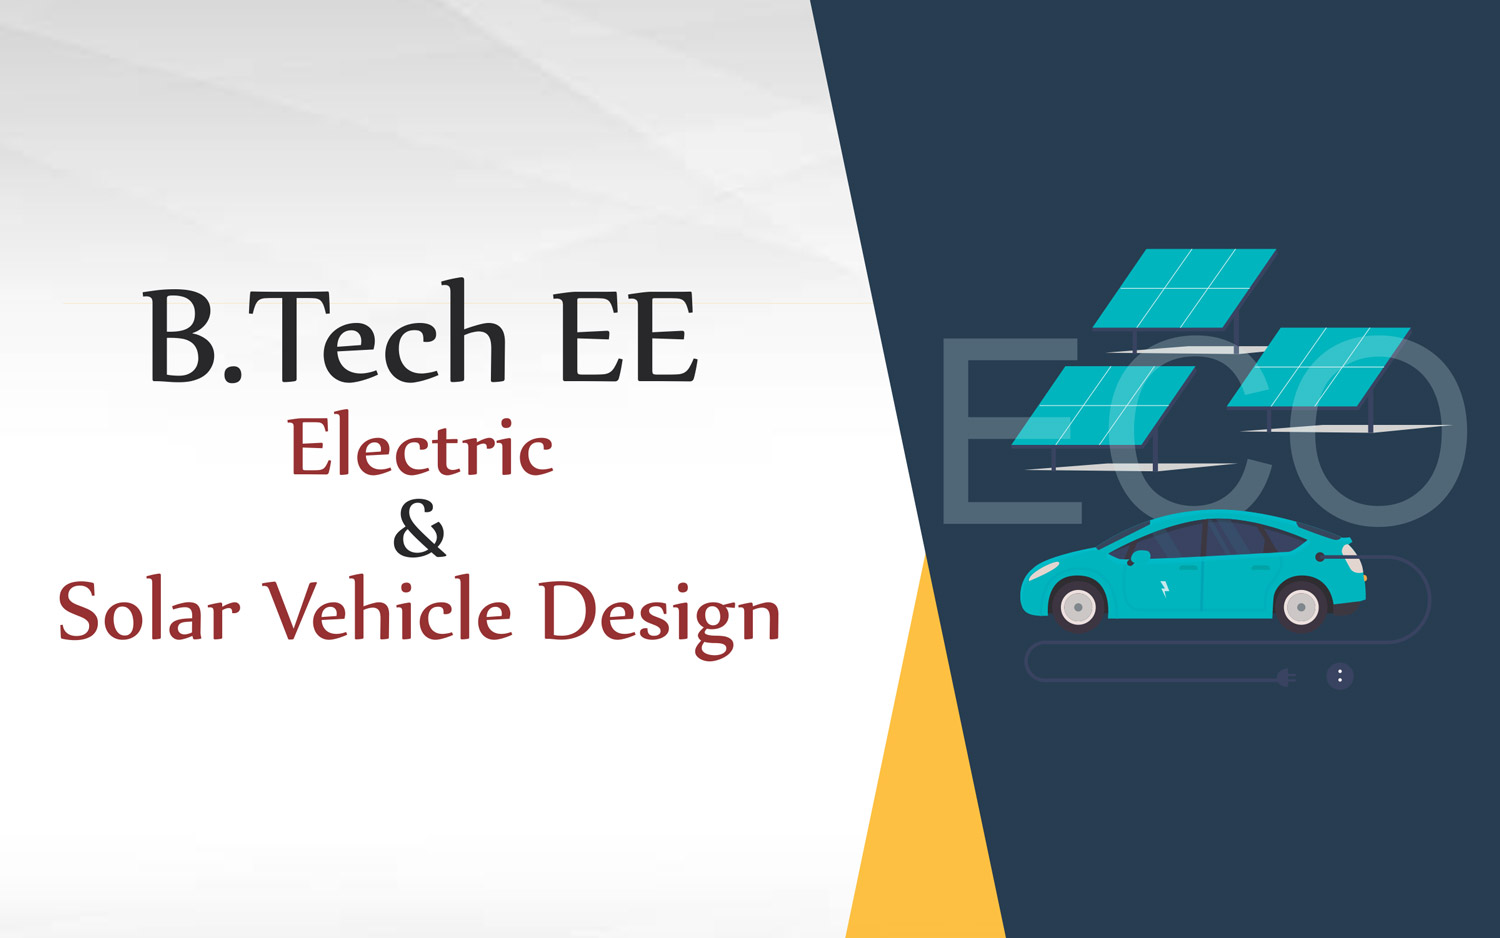 B.Tech EE Electric & Solar Vehicle Design